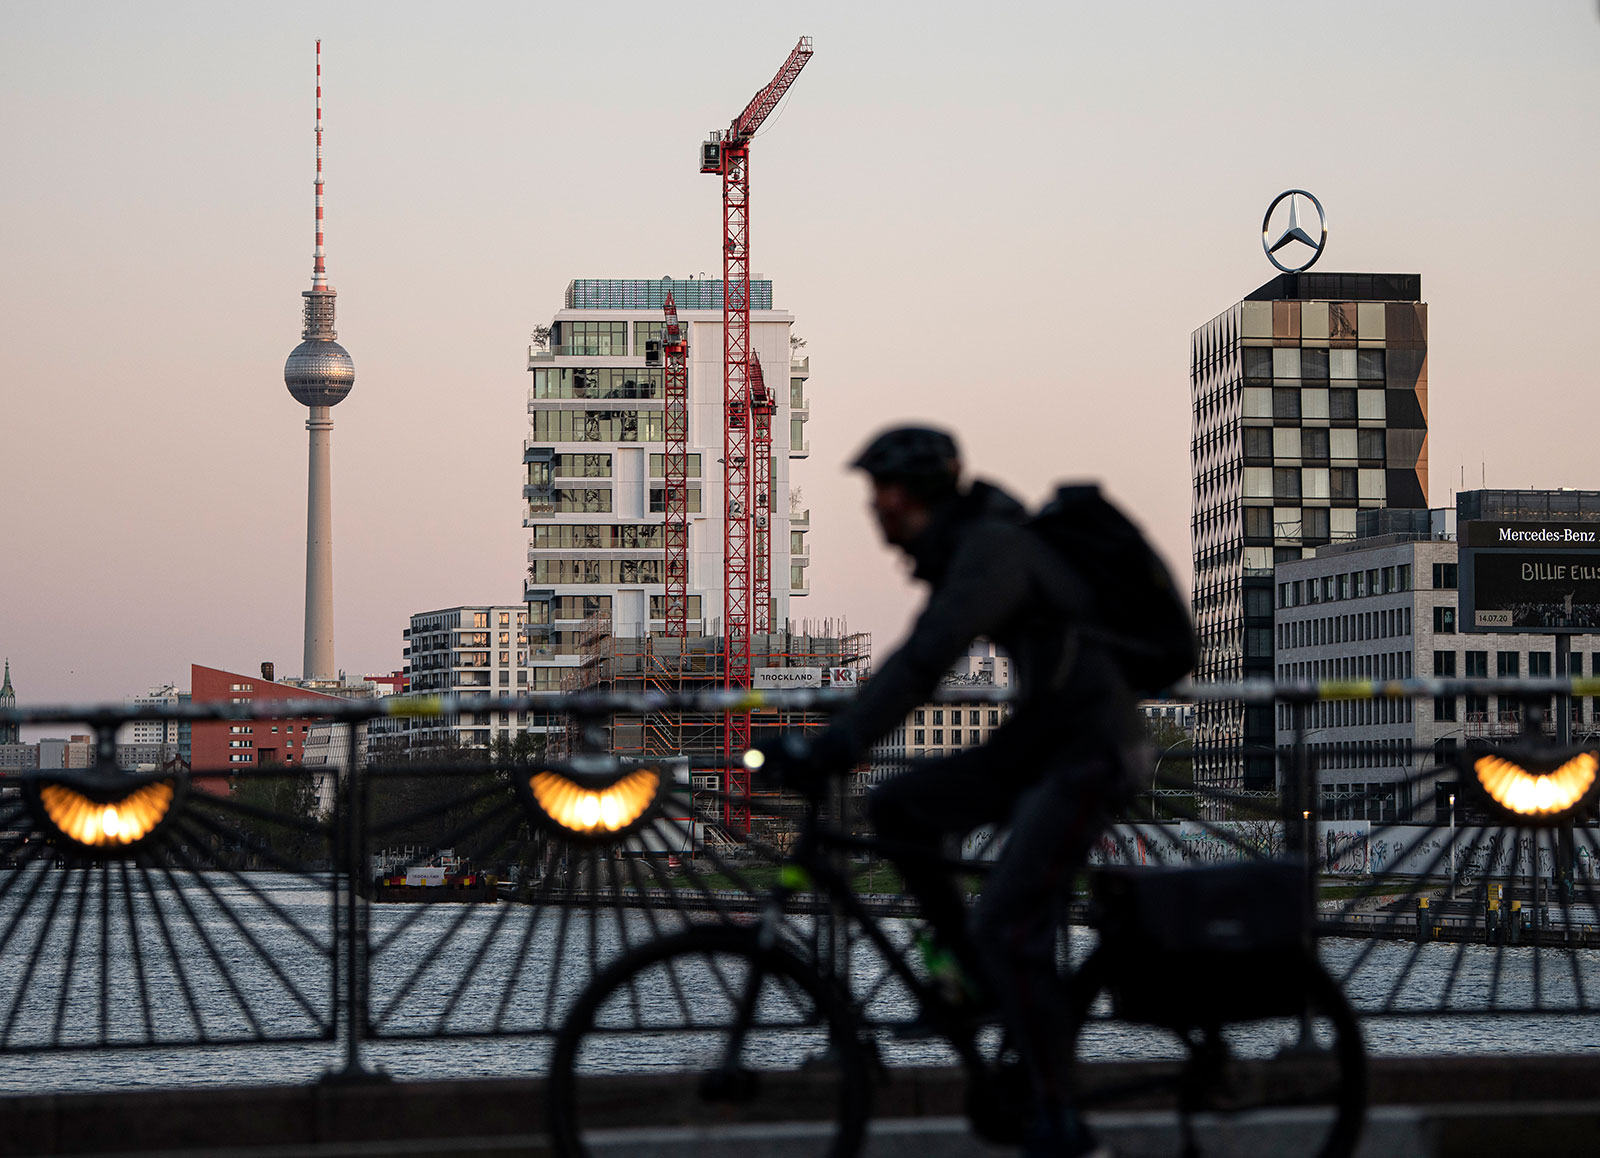 A cyclist crosses the Oberbaum Bridge in Berlin in the early morning of April 14.